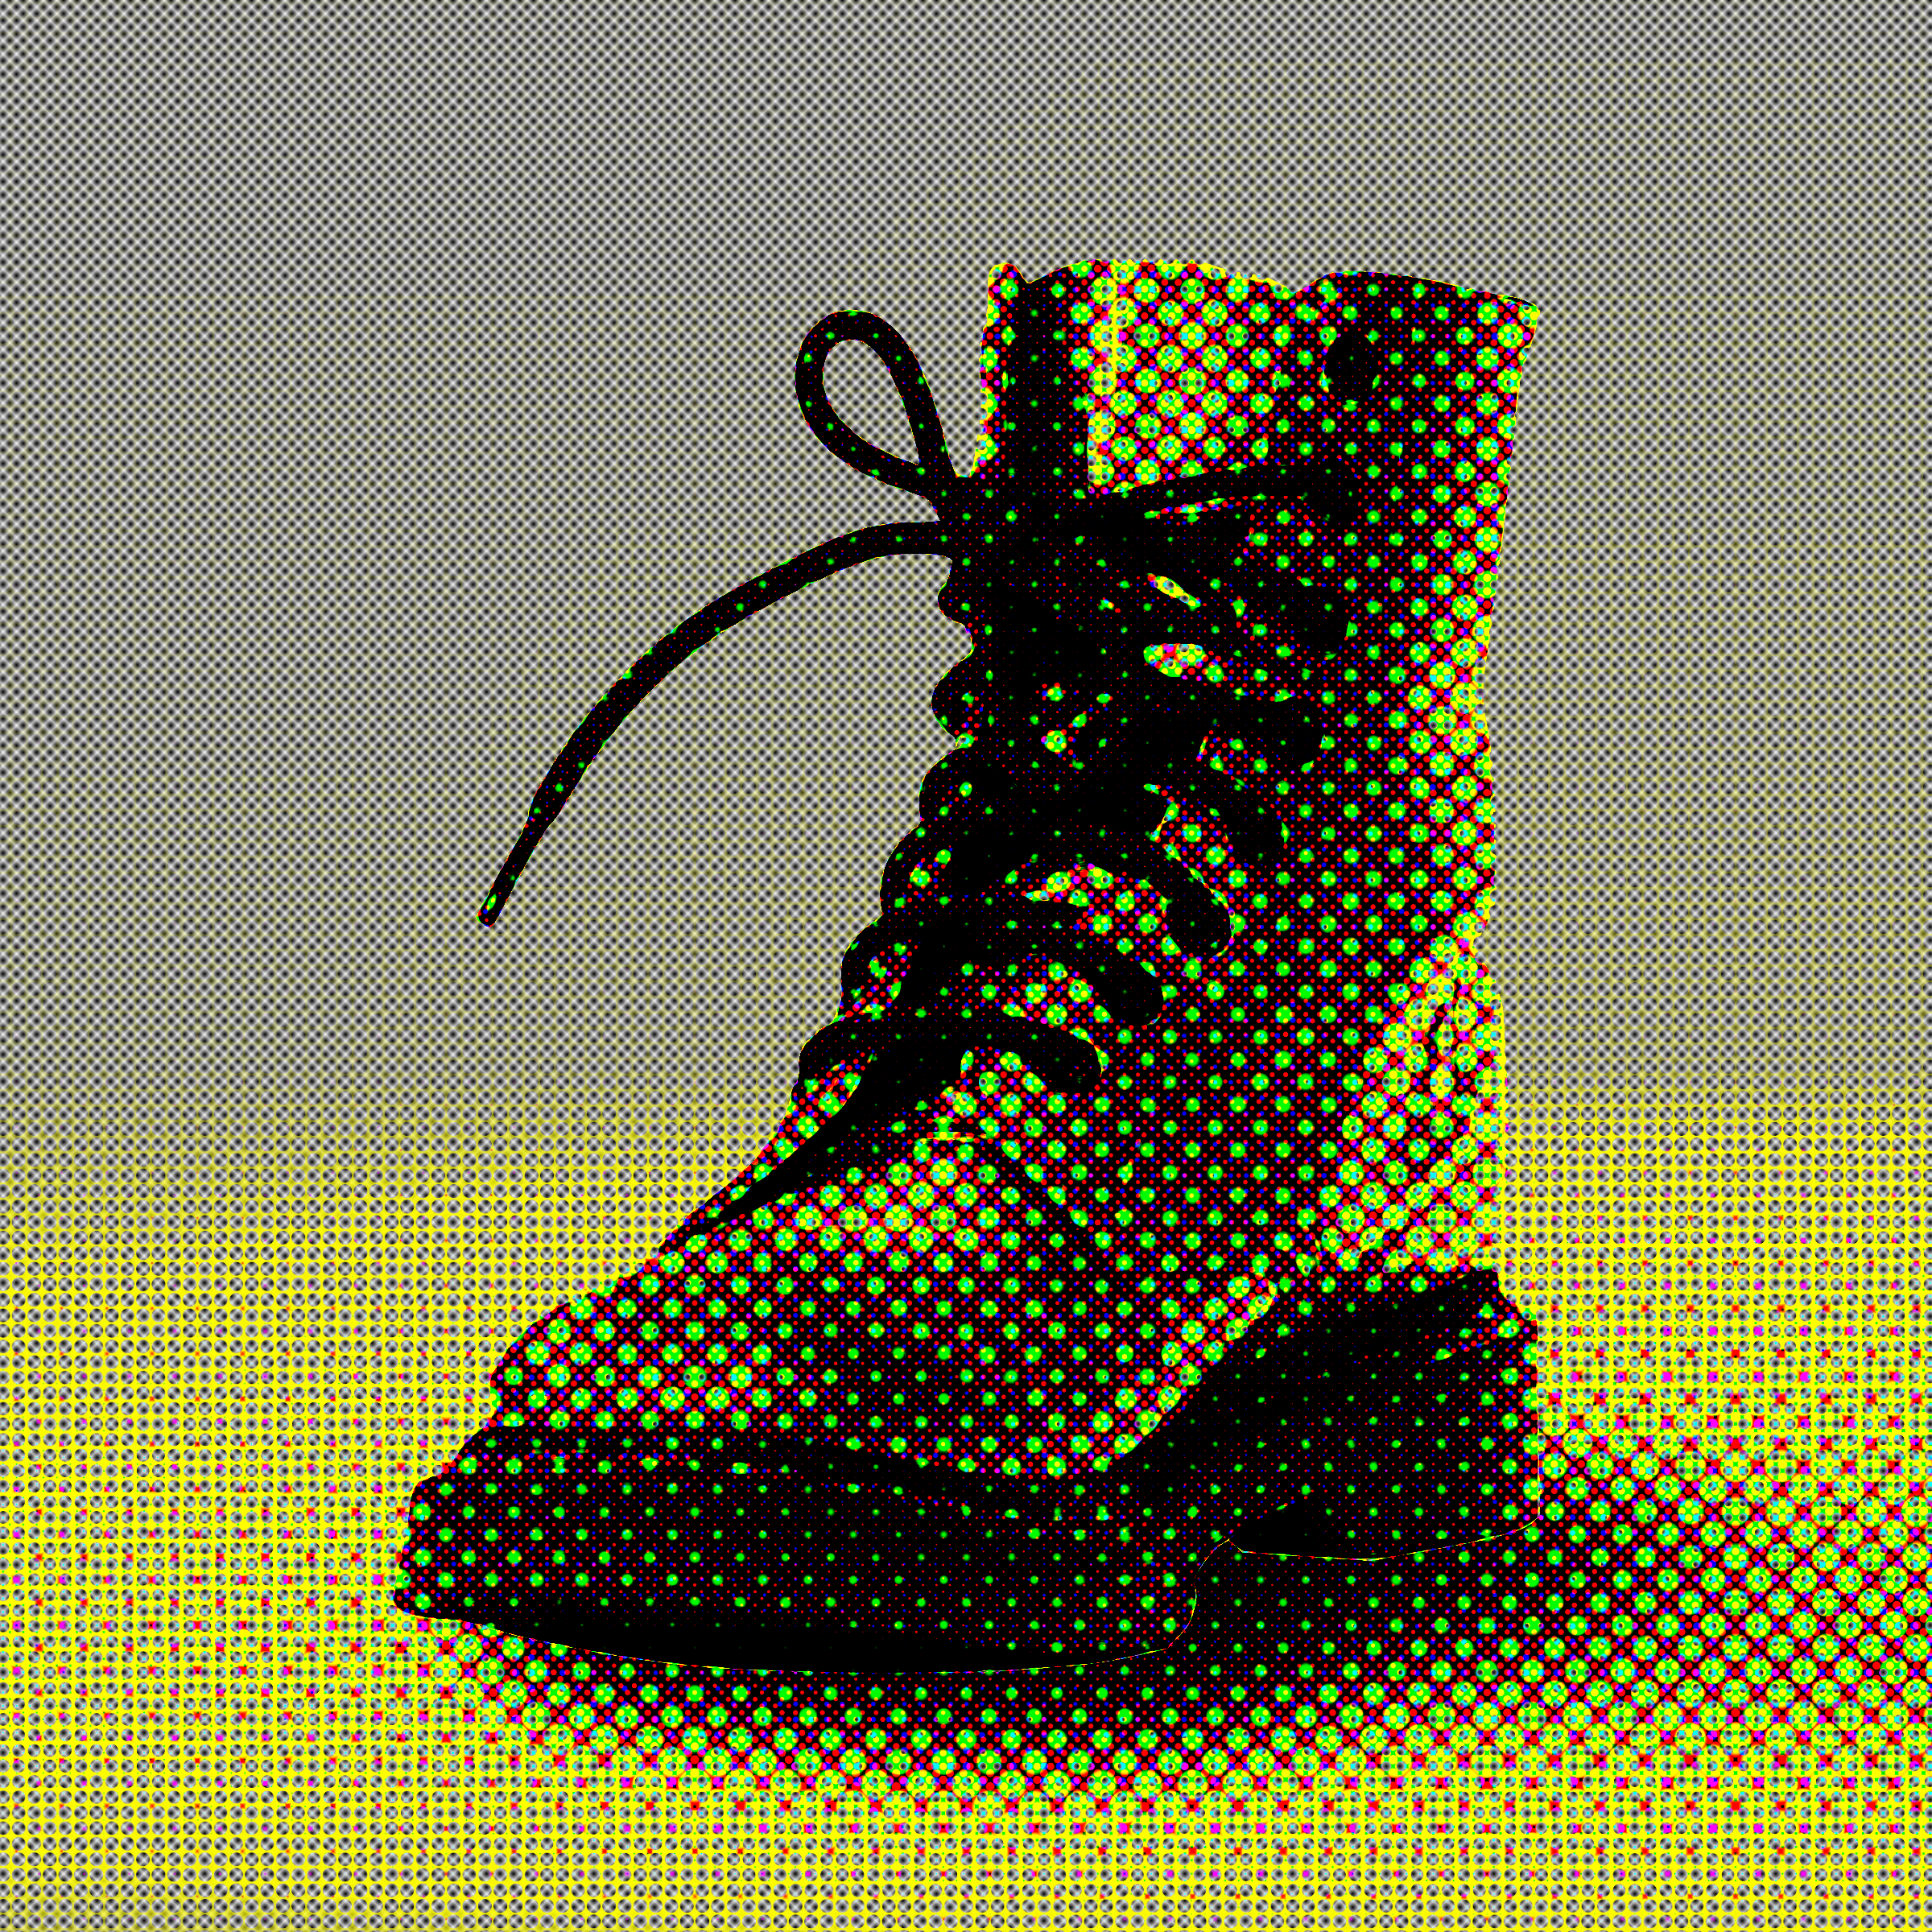 boot remix by Lazur URH